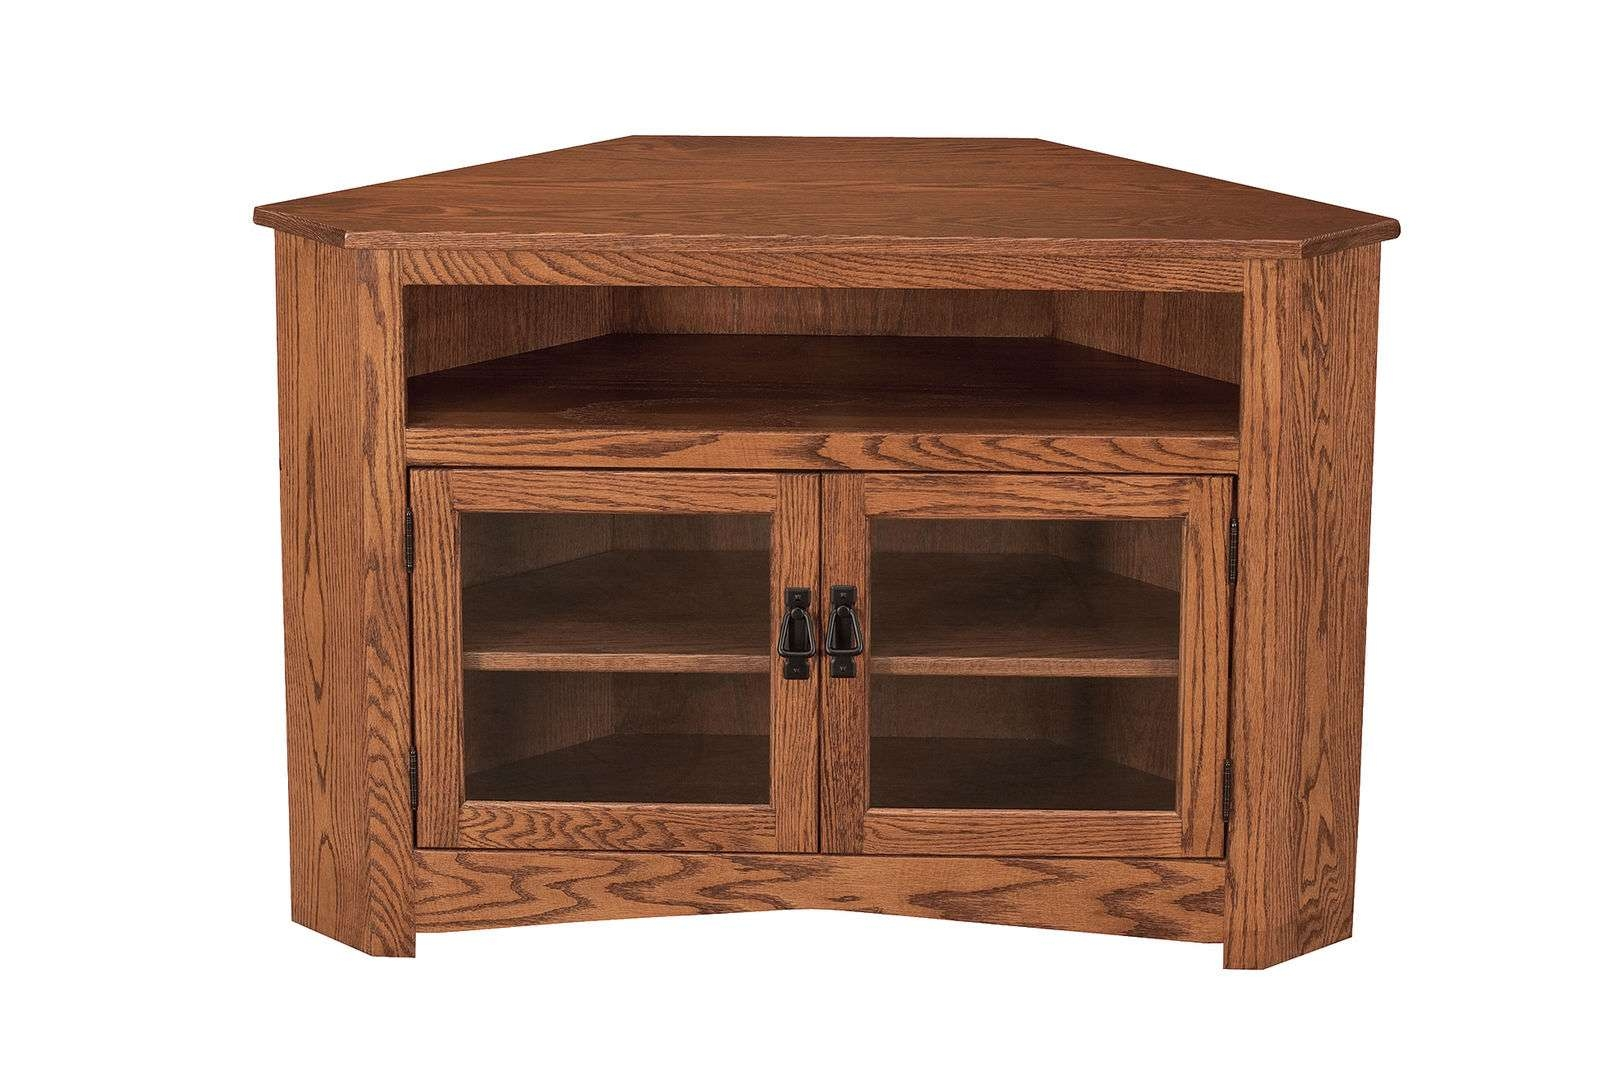 Tv Stands & Consoles Pertaining To Maple Wood Tv Stands (View 11 of 15)